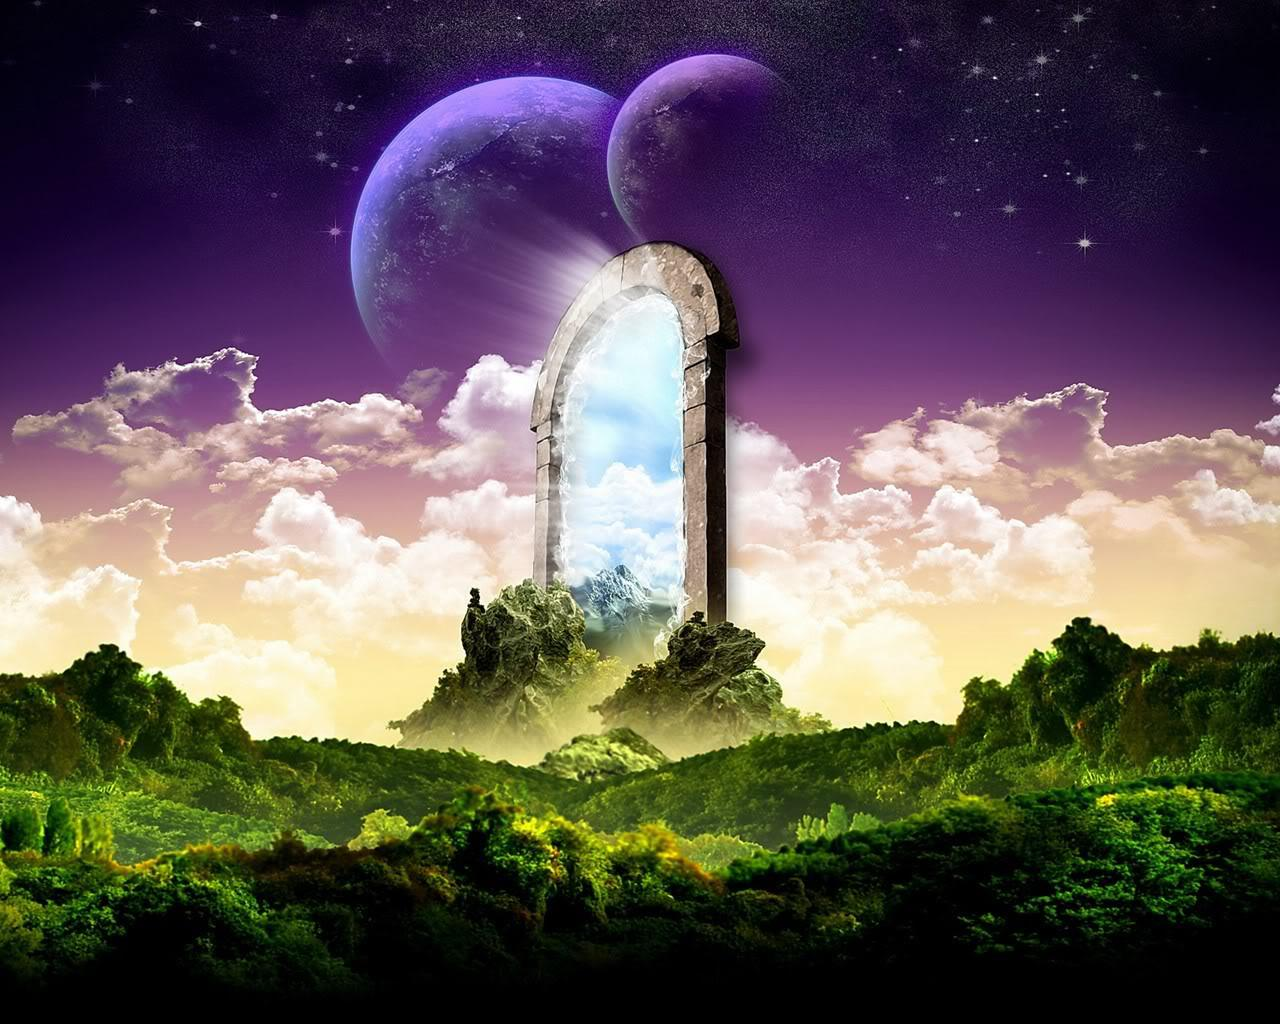 Magic Door Wallpapers   HD Wallpapers 80260 1280x1024